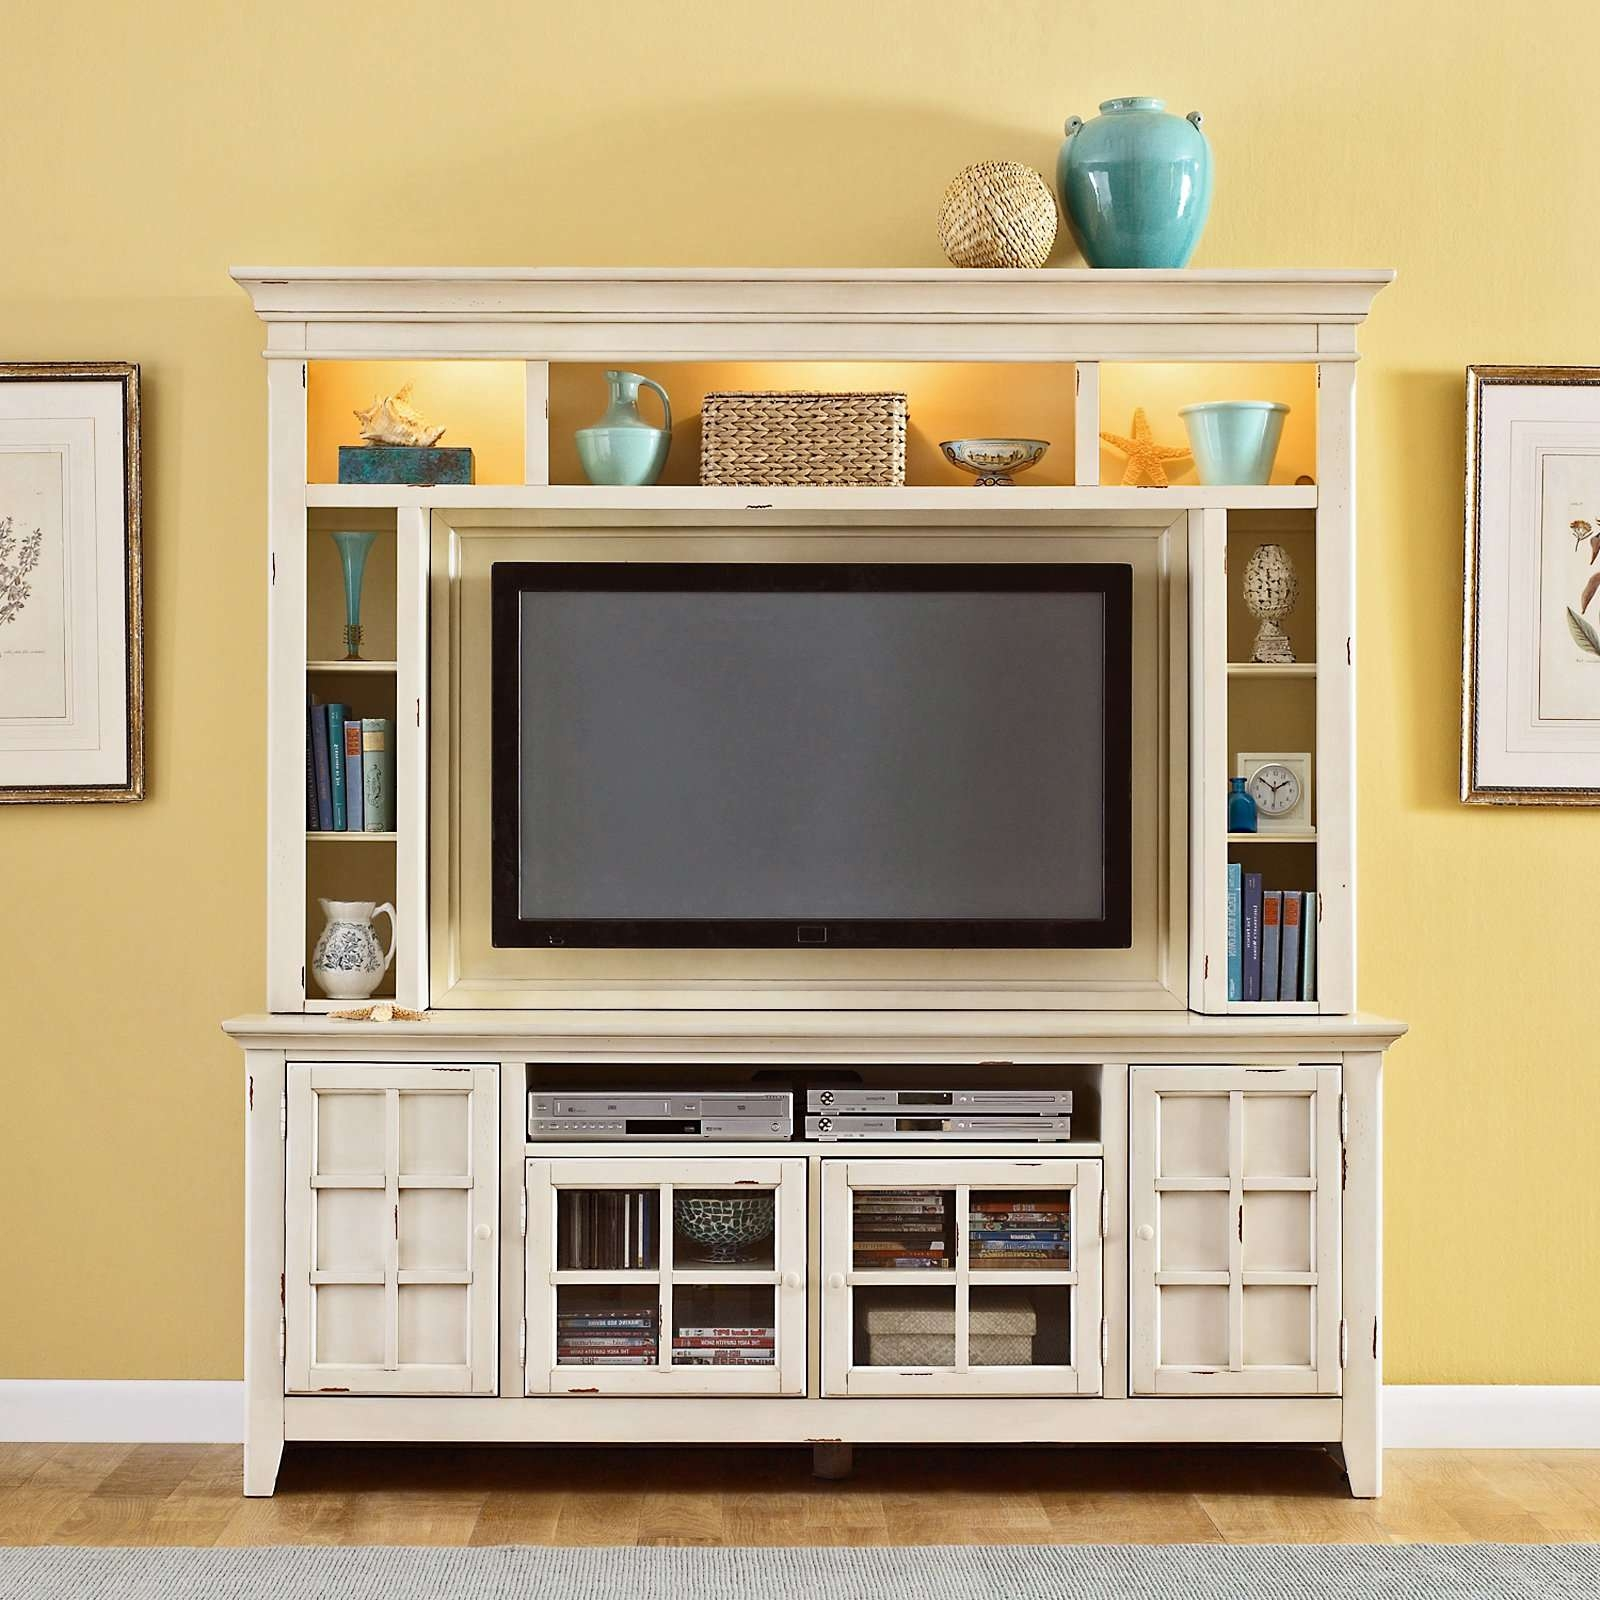 Compact White Painted Oak Wood Media Cabinet With Lighted Shelves Regarding Tall Tv Stands For Flat Screen (View 12 of 15)